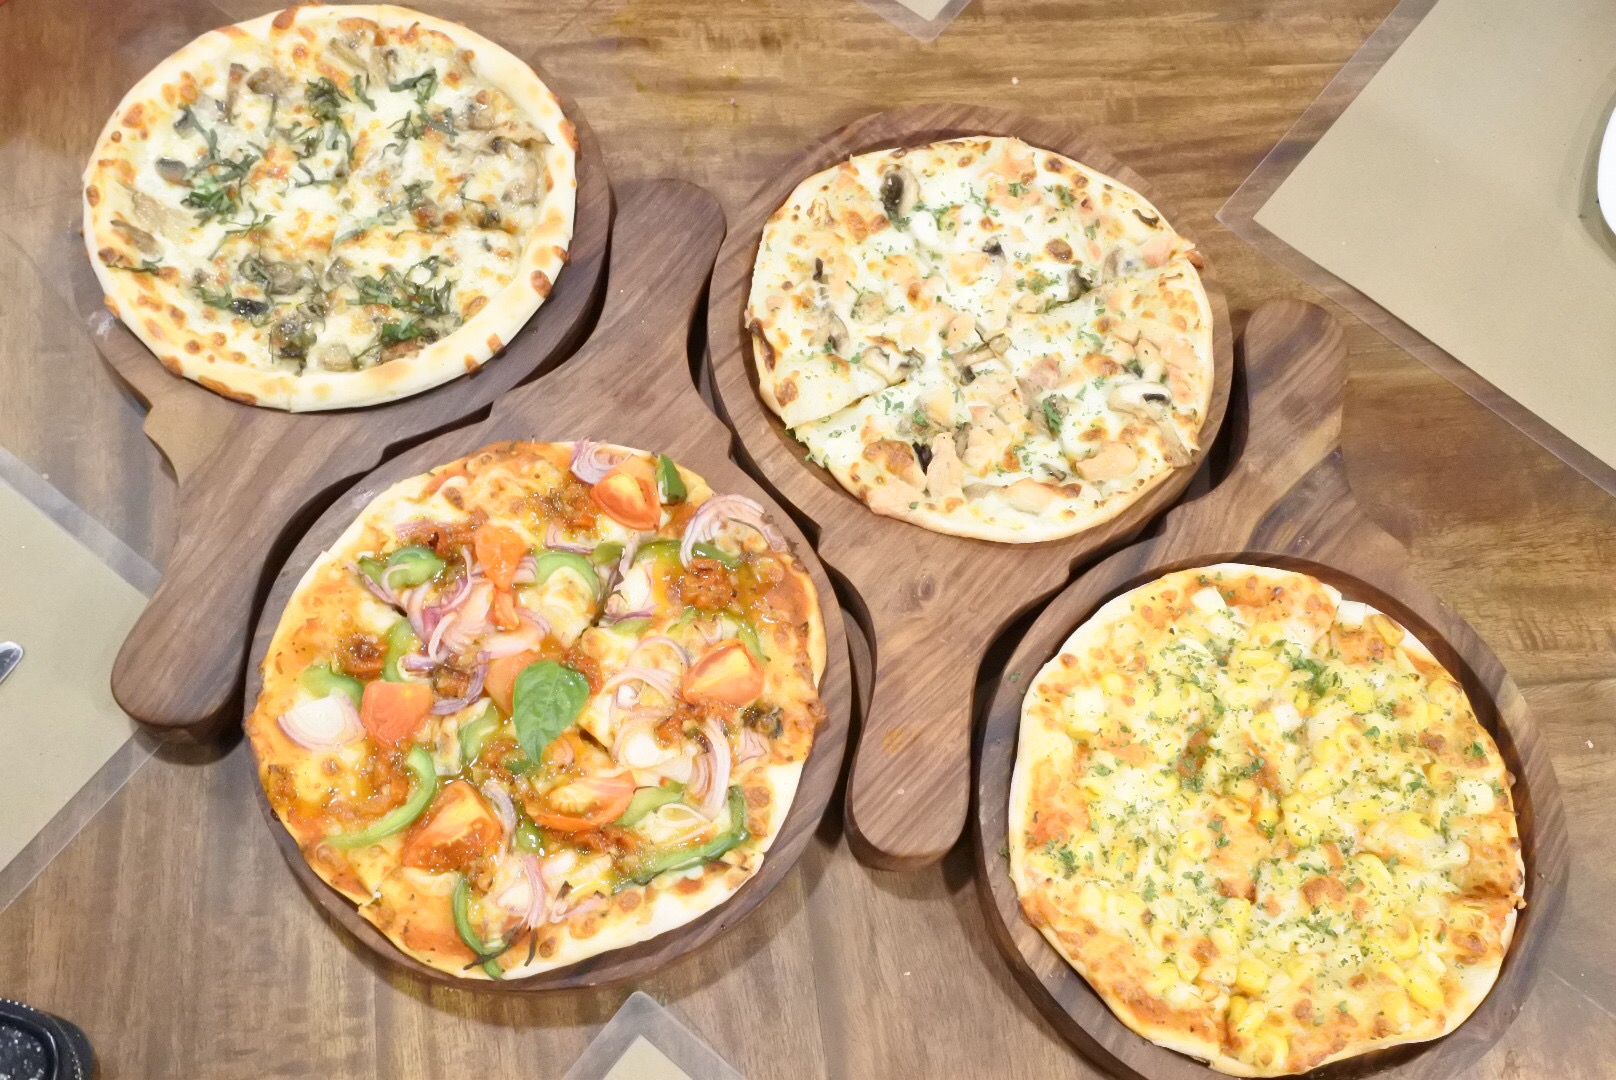 All the different types of pizzas we sampled